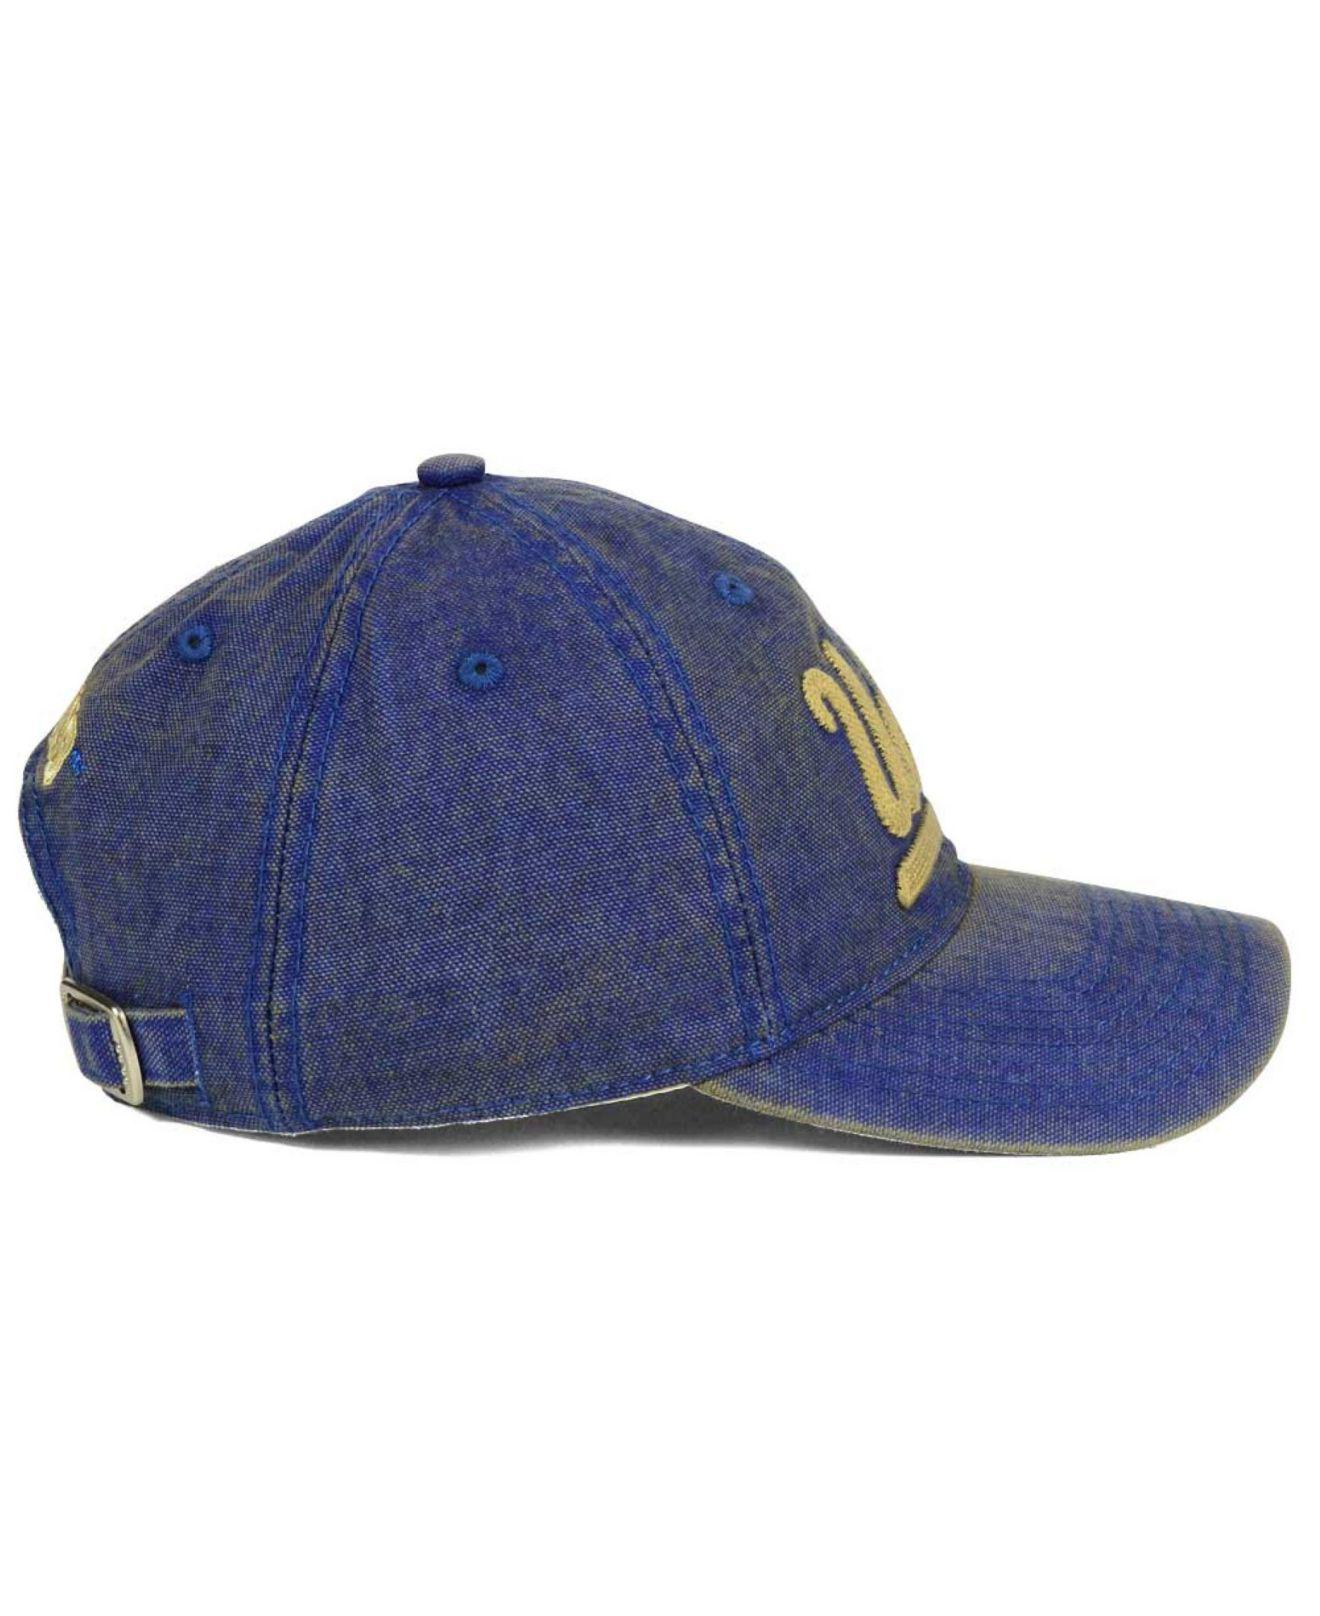 5678c22e8f2e8 ... usa lyst adidas ucla bruins over dye slouch cap in blue for men 59094  f7916